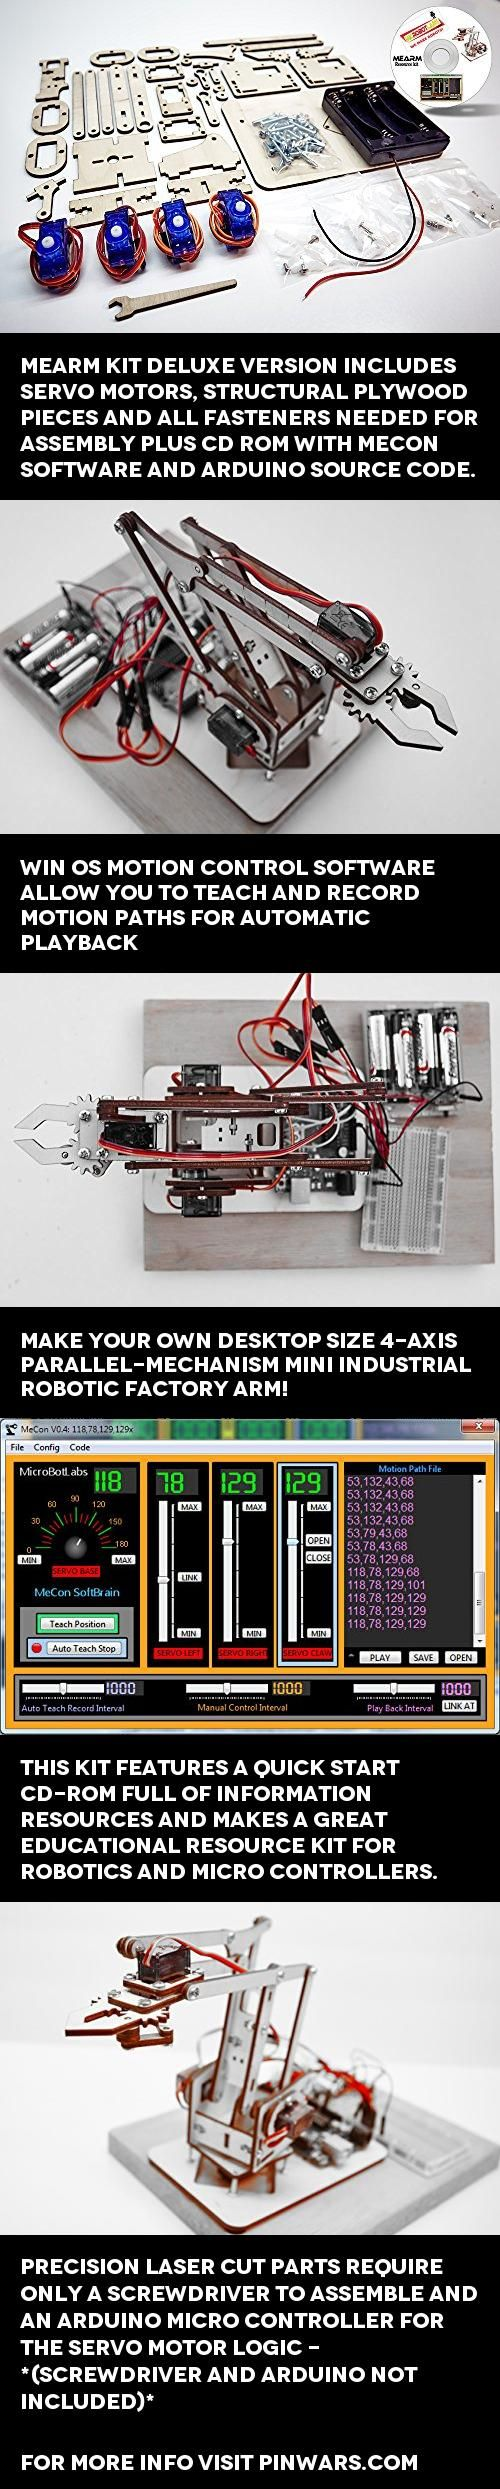 MeArm DIY Robot Arm Kit With MeCon Pro Motion Control Software and Arduino Source Code, MeArm Kit Deluxe version includes Servo motors, Structural plywood pieces and all Fasteners needed for assembly Plus CD rom with MeCon Software and Arduino Source Code. MeArm is a low cost open-source..., #Toys, #RC Figures & Robots